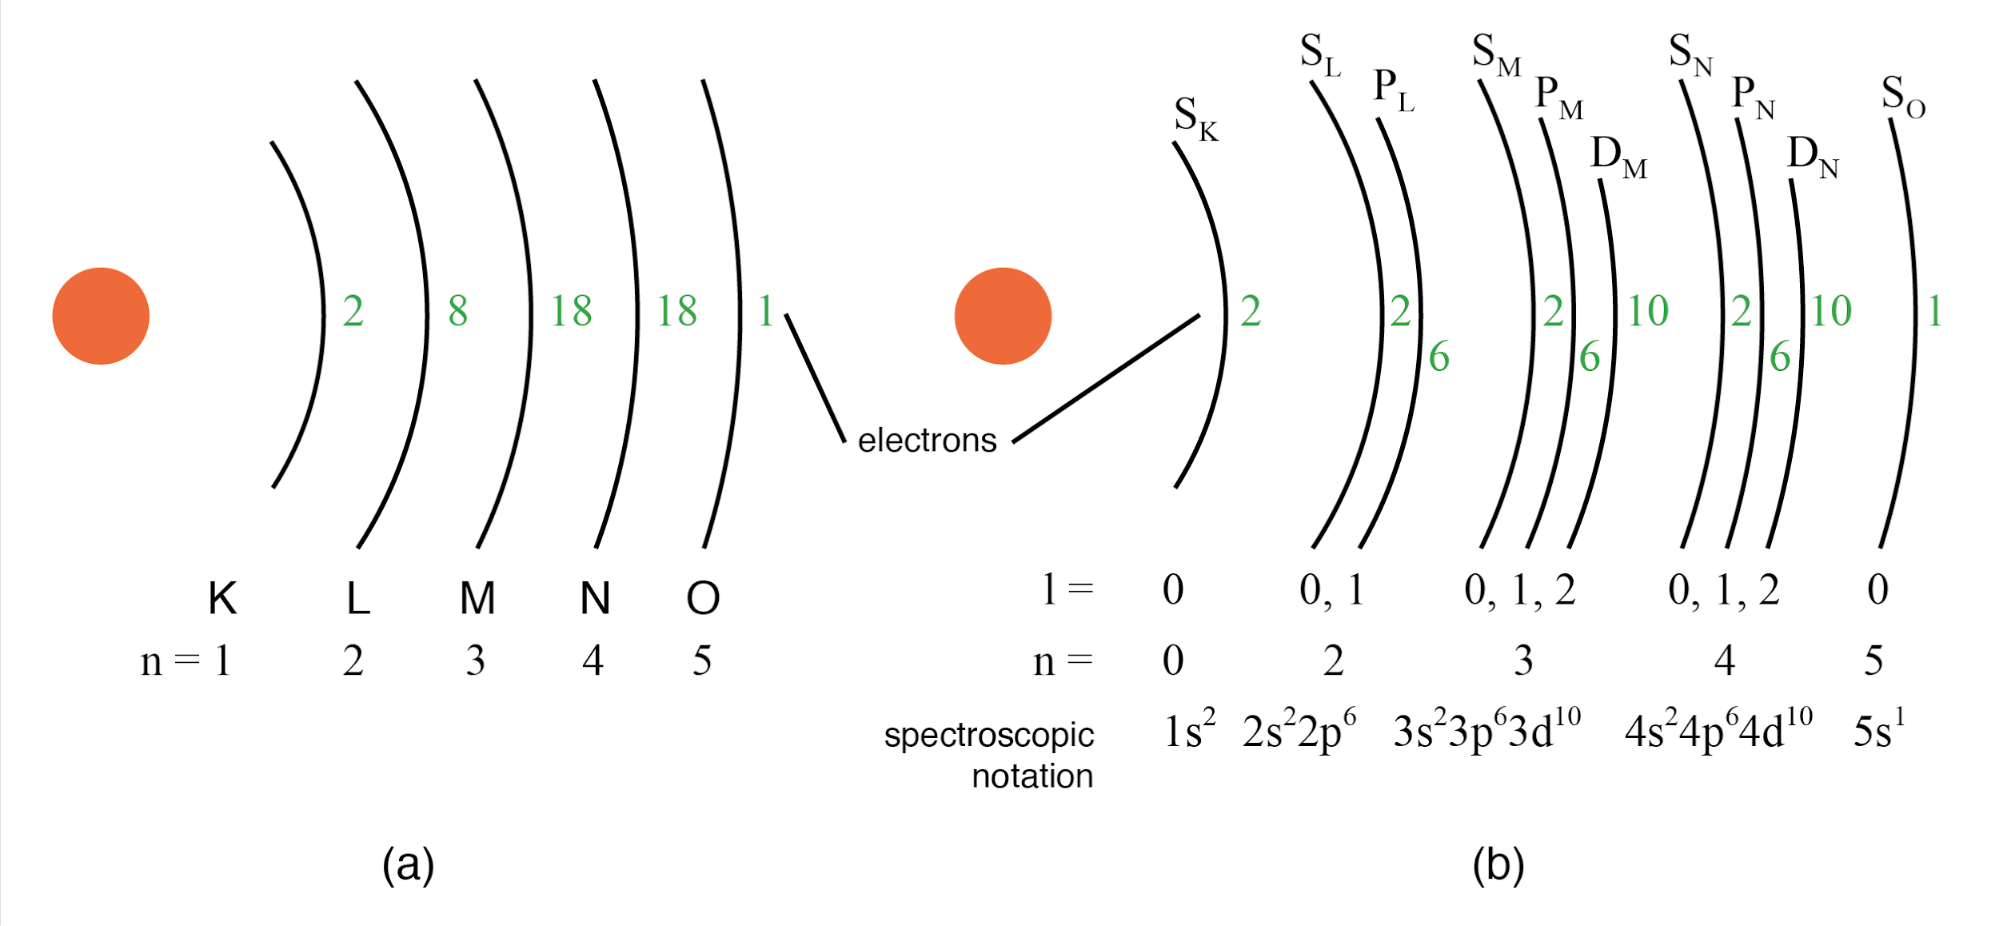 (a) Bohr representation of Silver atom, (b) Subshell representation of Ag with division of shells into subshells (angular quantum number l). This diagram implies nothing about the actual position of electrons, but represents energy levels.